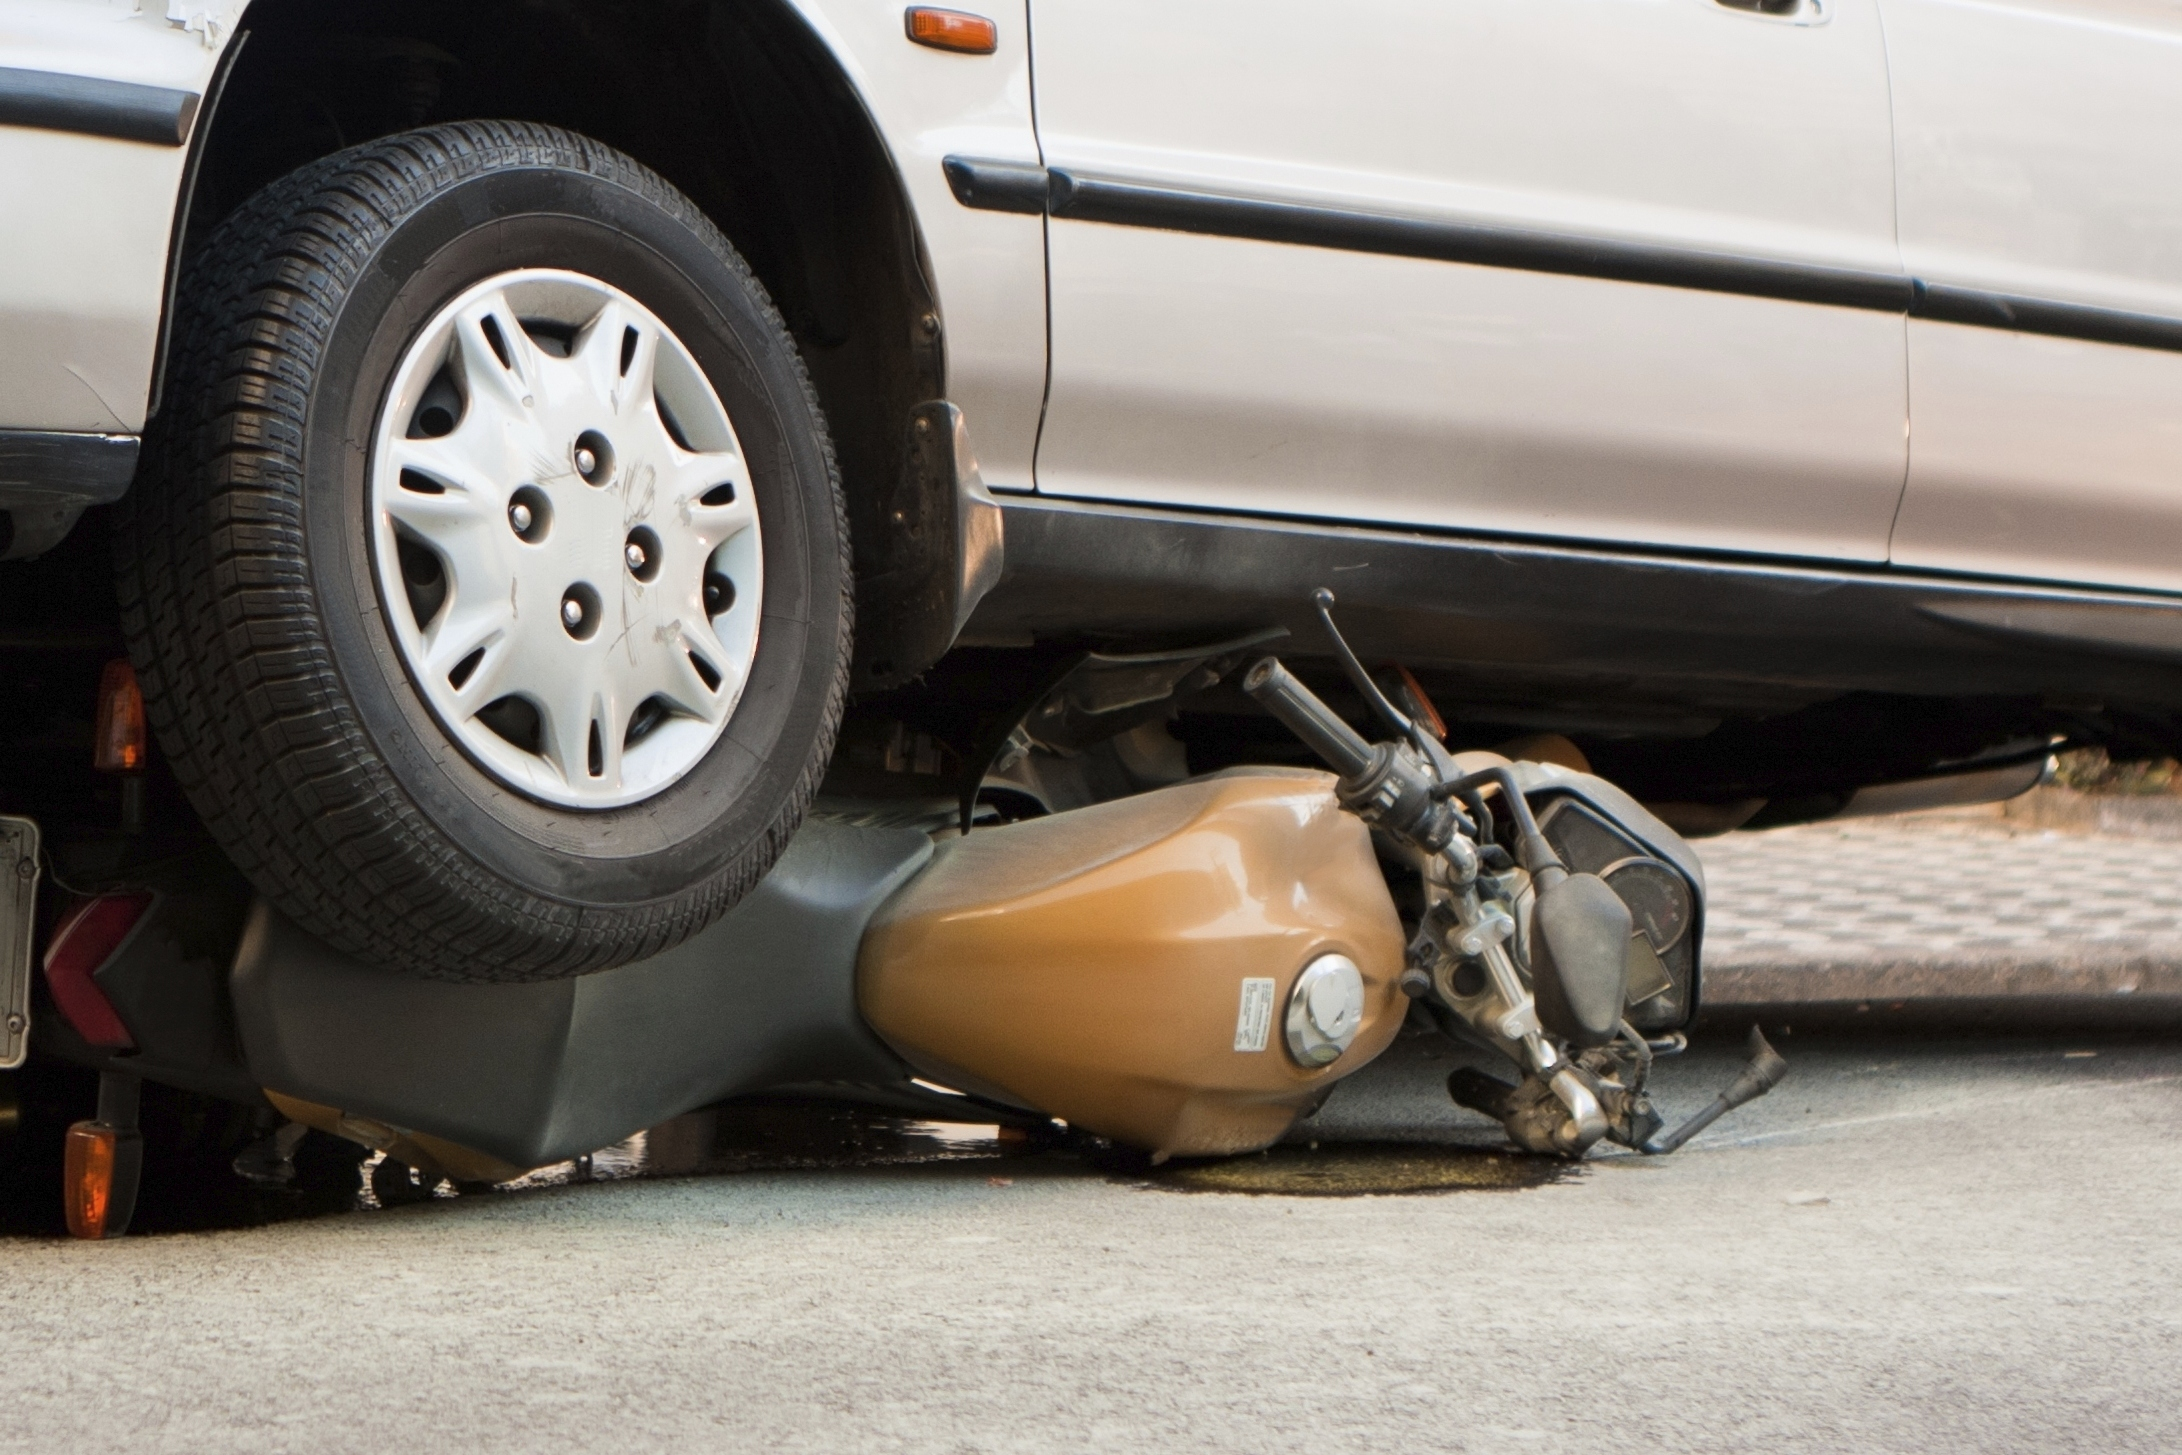 Every year around 100,000 people will be INJURED in motorcycle accidents.